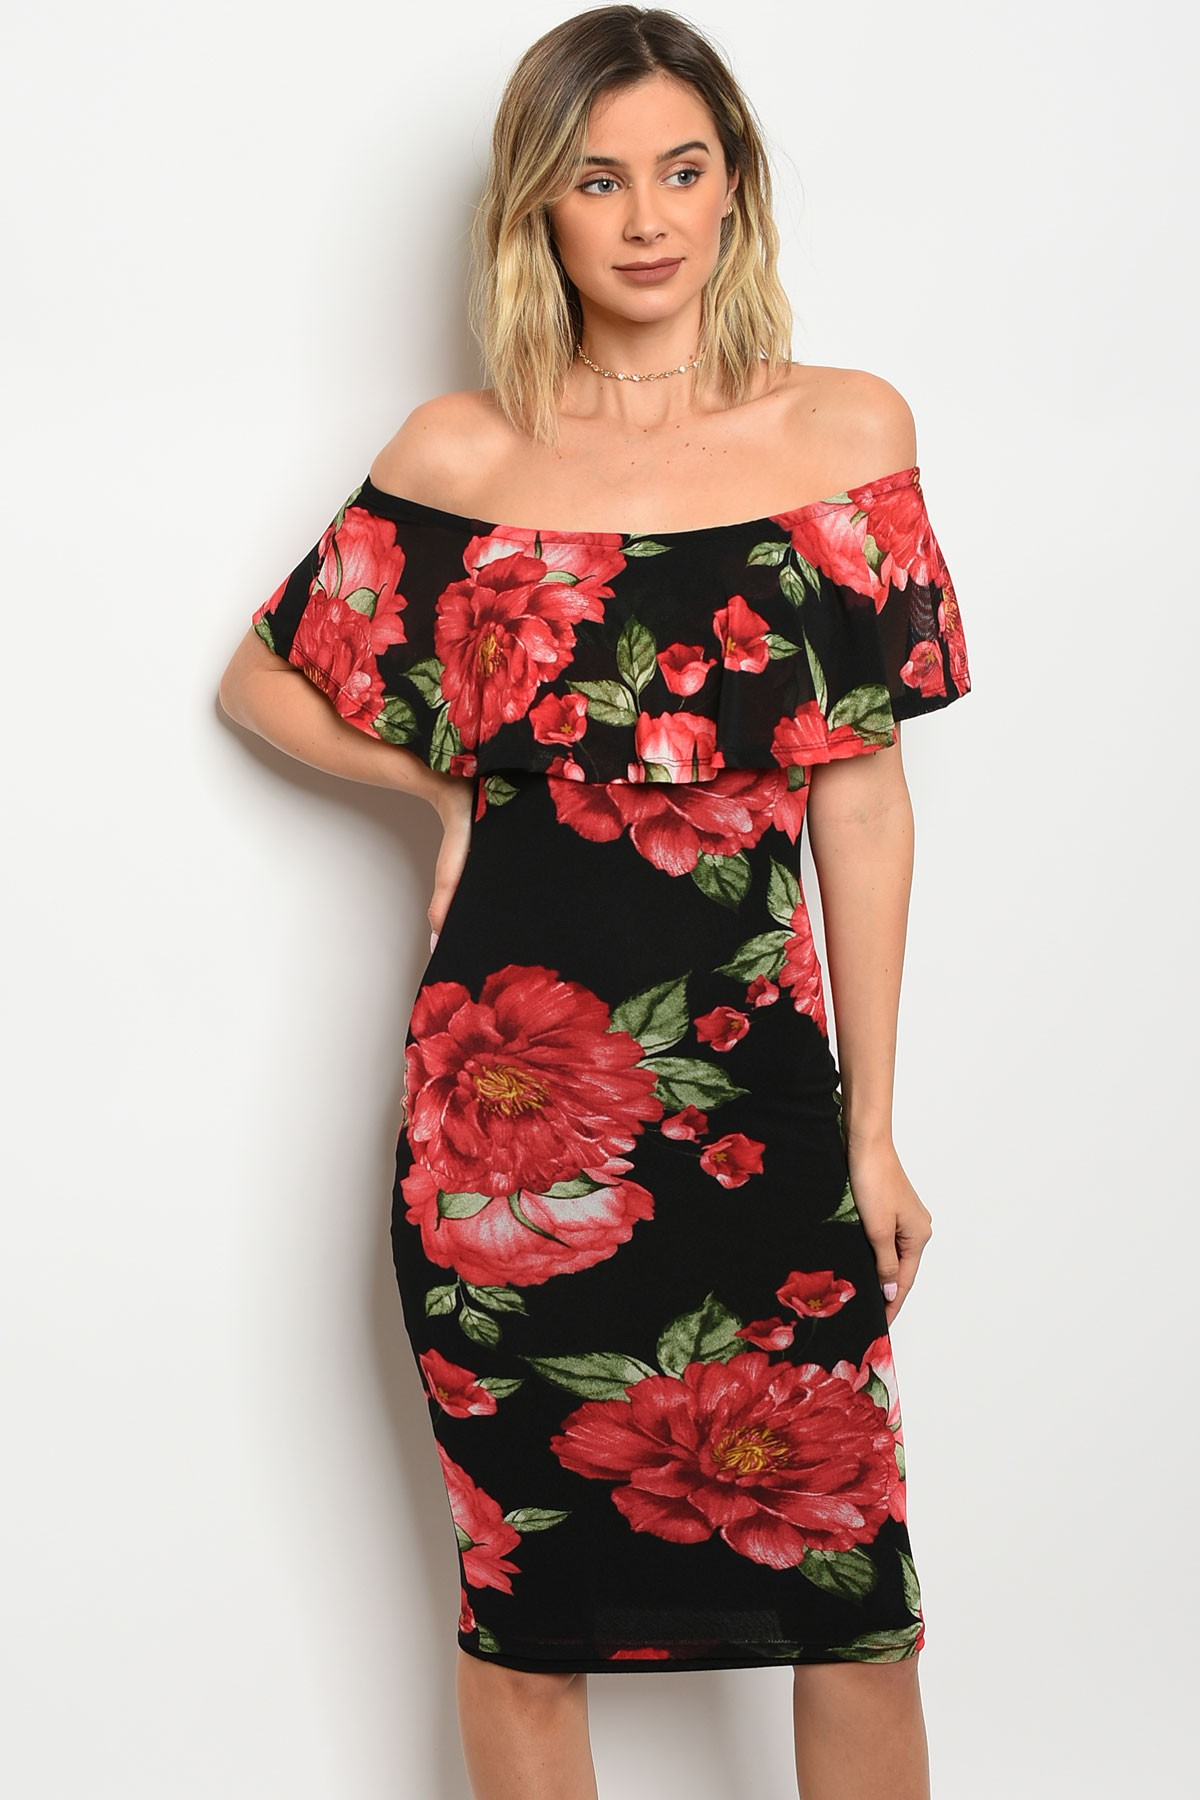 ... BLACK WITH RED FLOWERS DRESS 2-2- · Larger Photo ... cf09174831b2